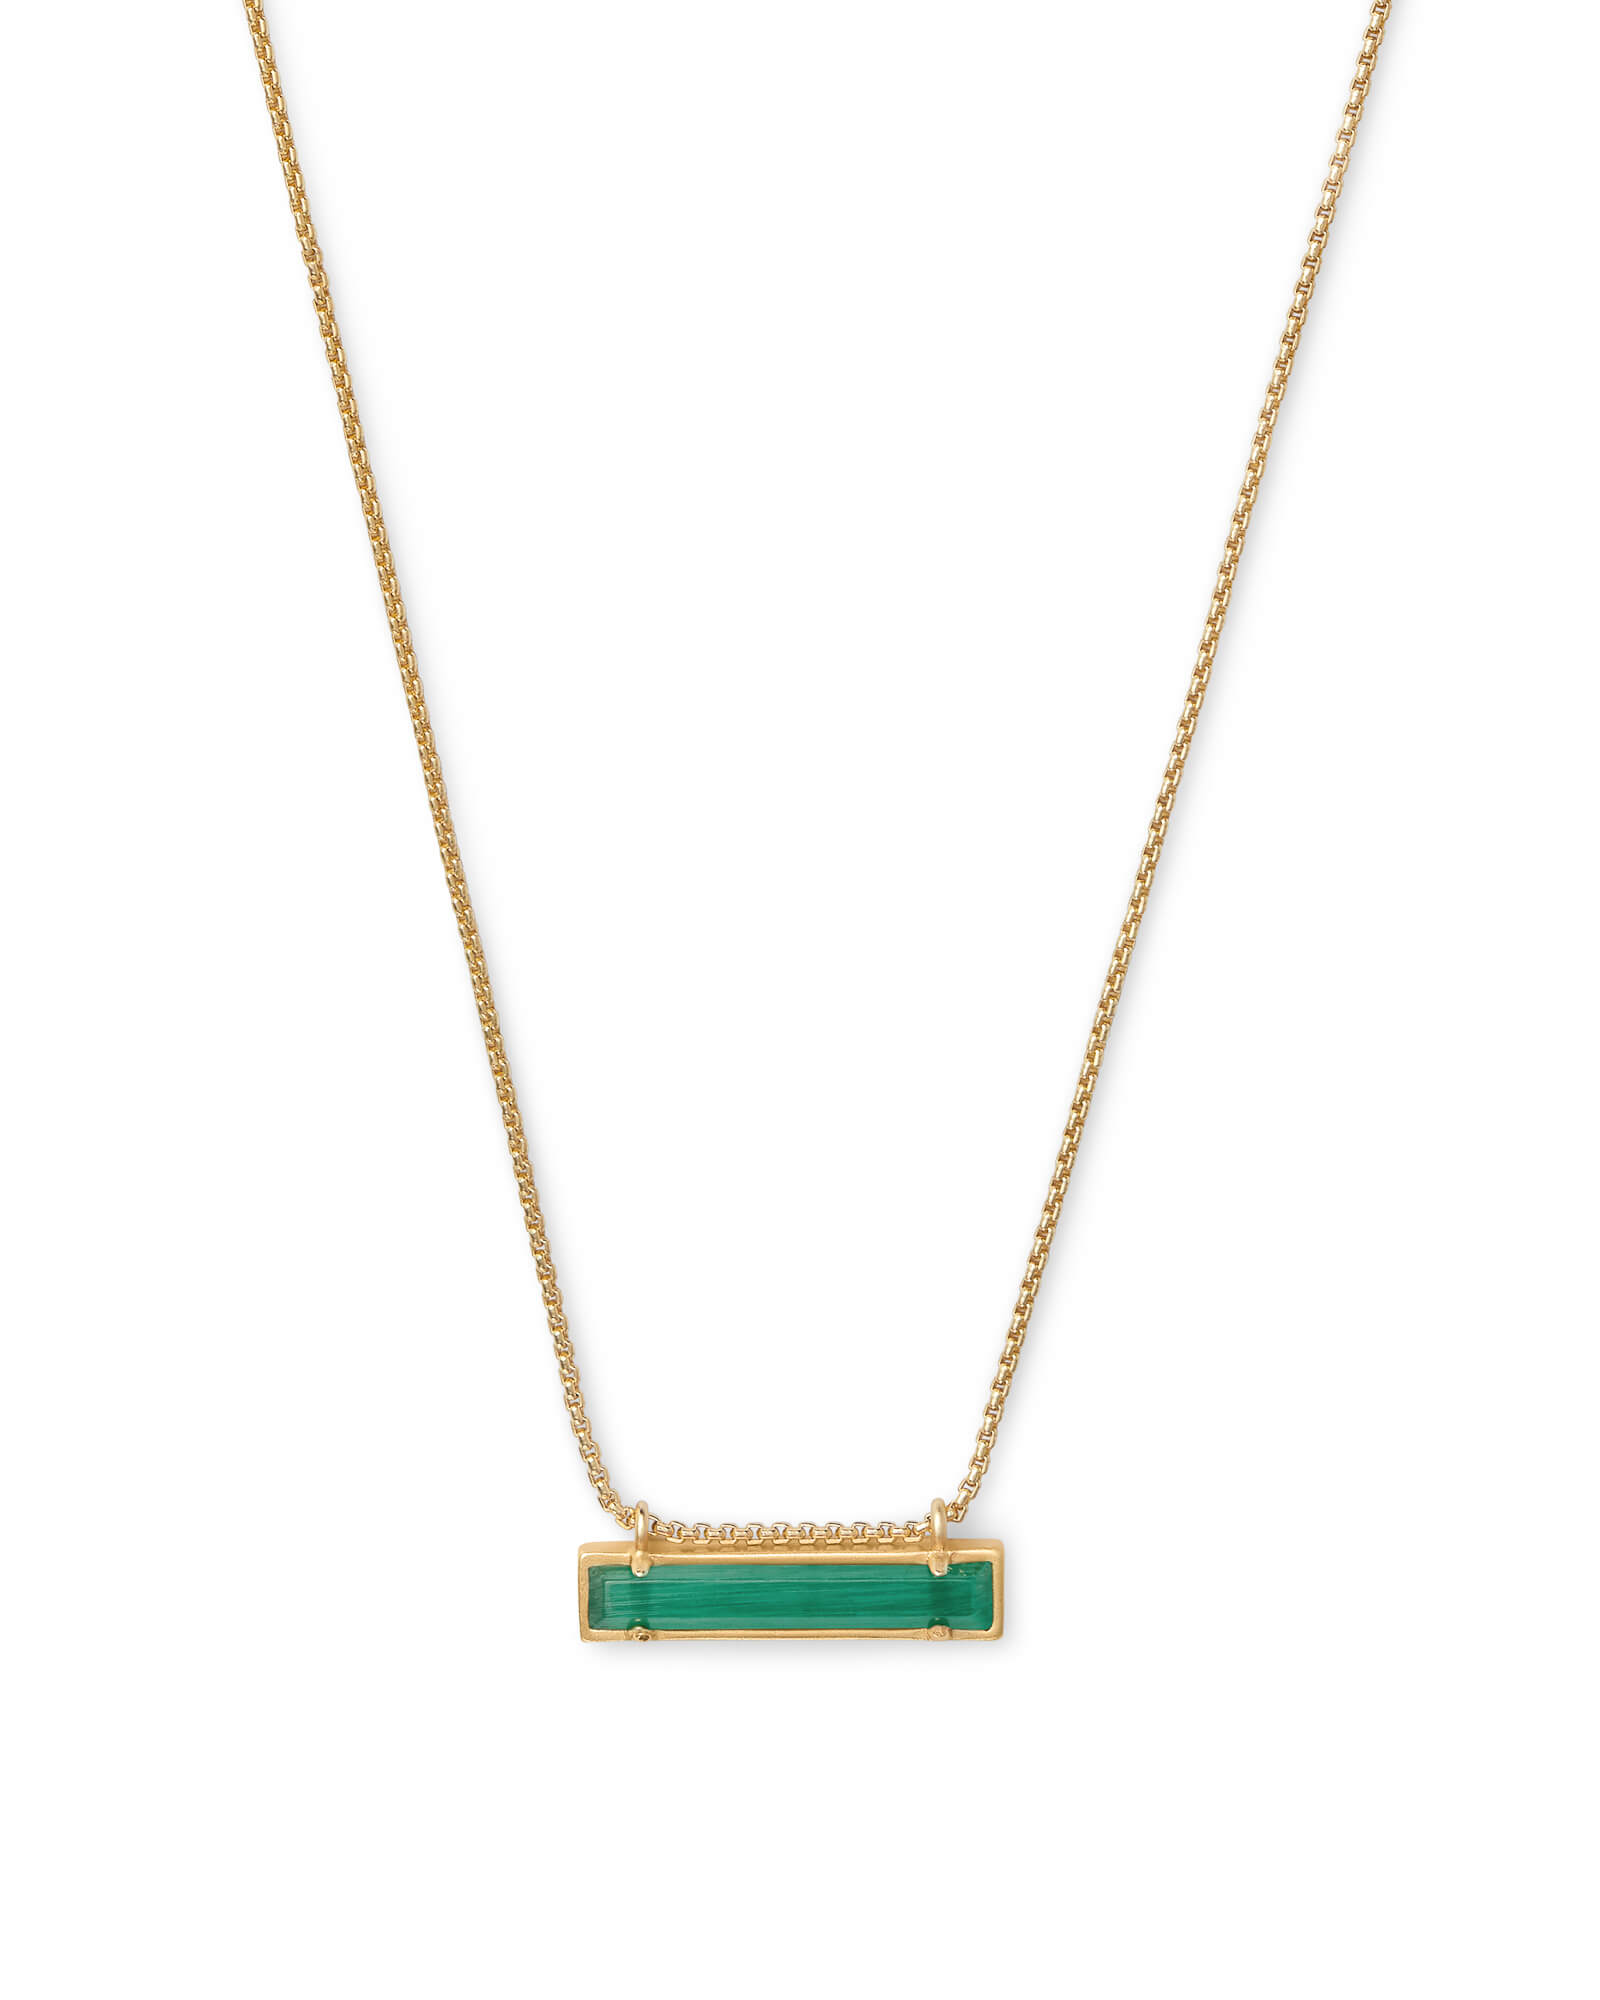 Leanor Gold Pendant Necklace In Emerald Cats Eye